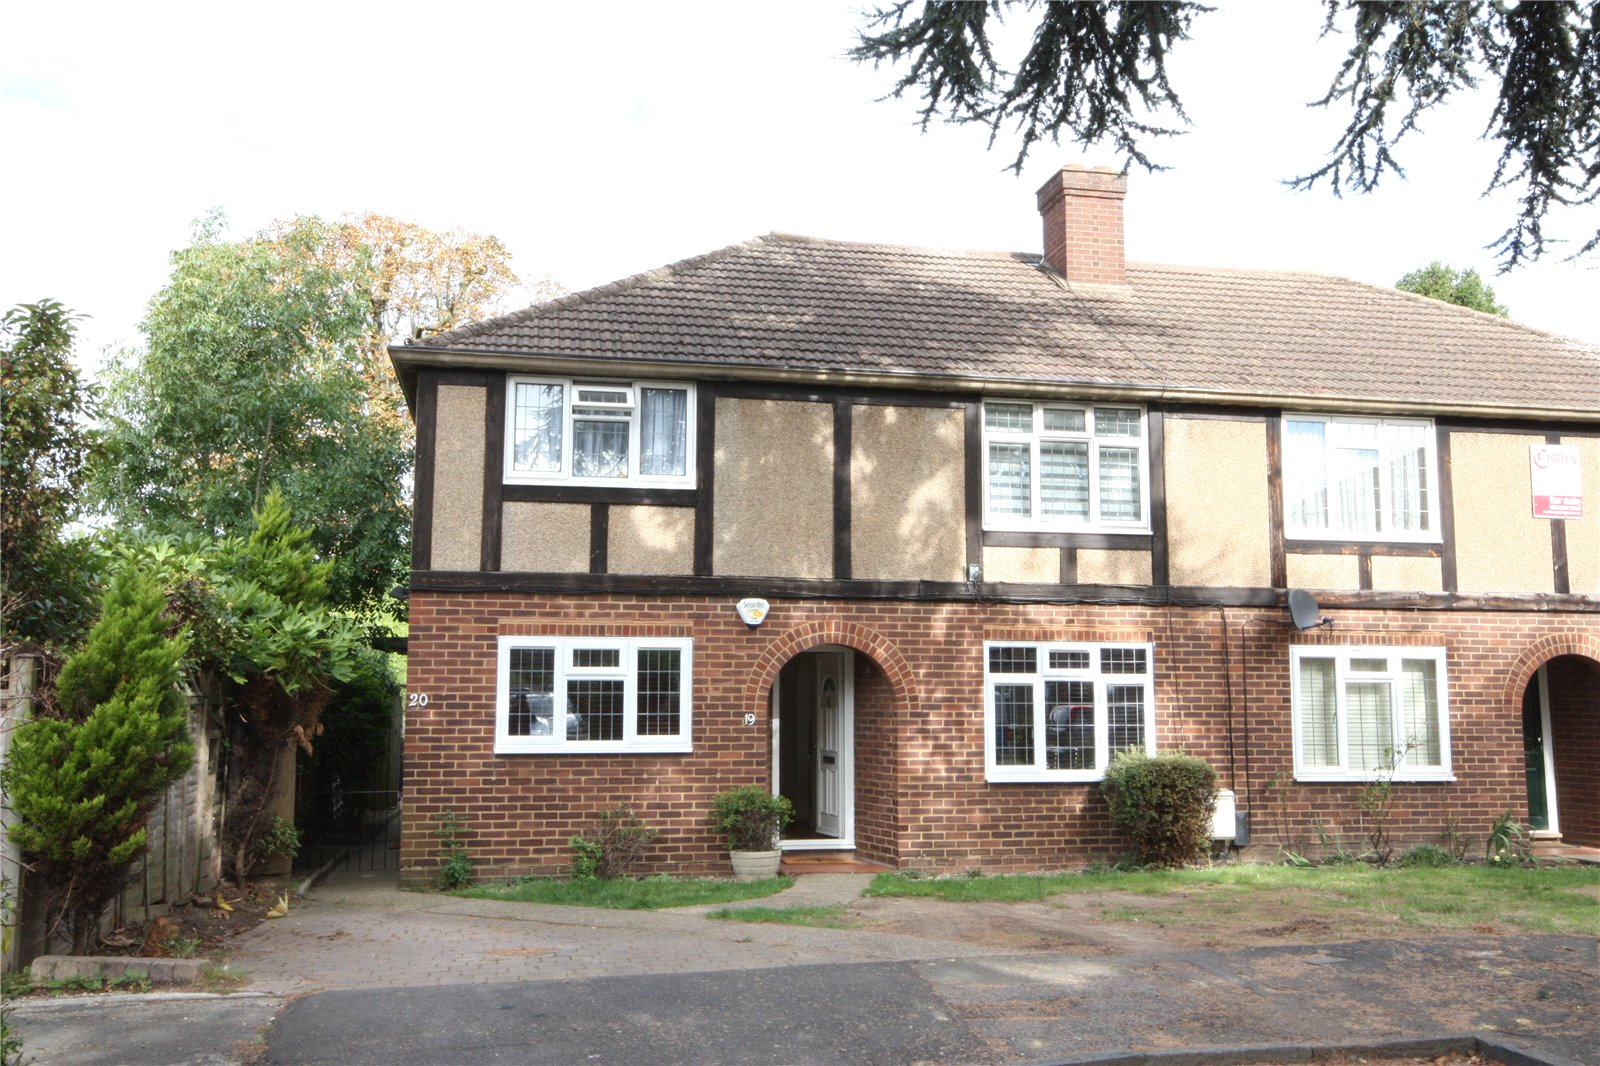 2 Bedrooms Maisonette Flat for sale in Calder Close Enfield Middlesex EN1